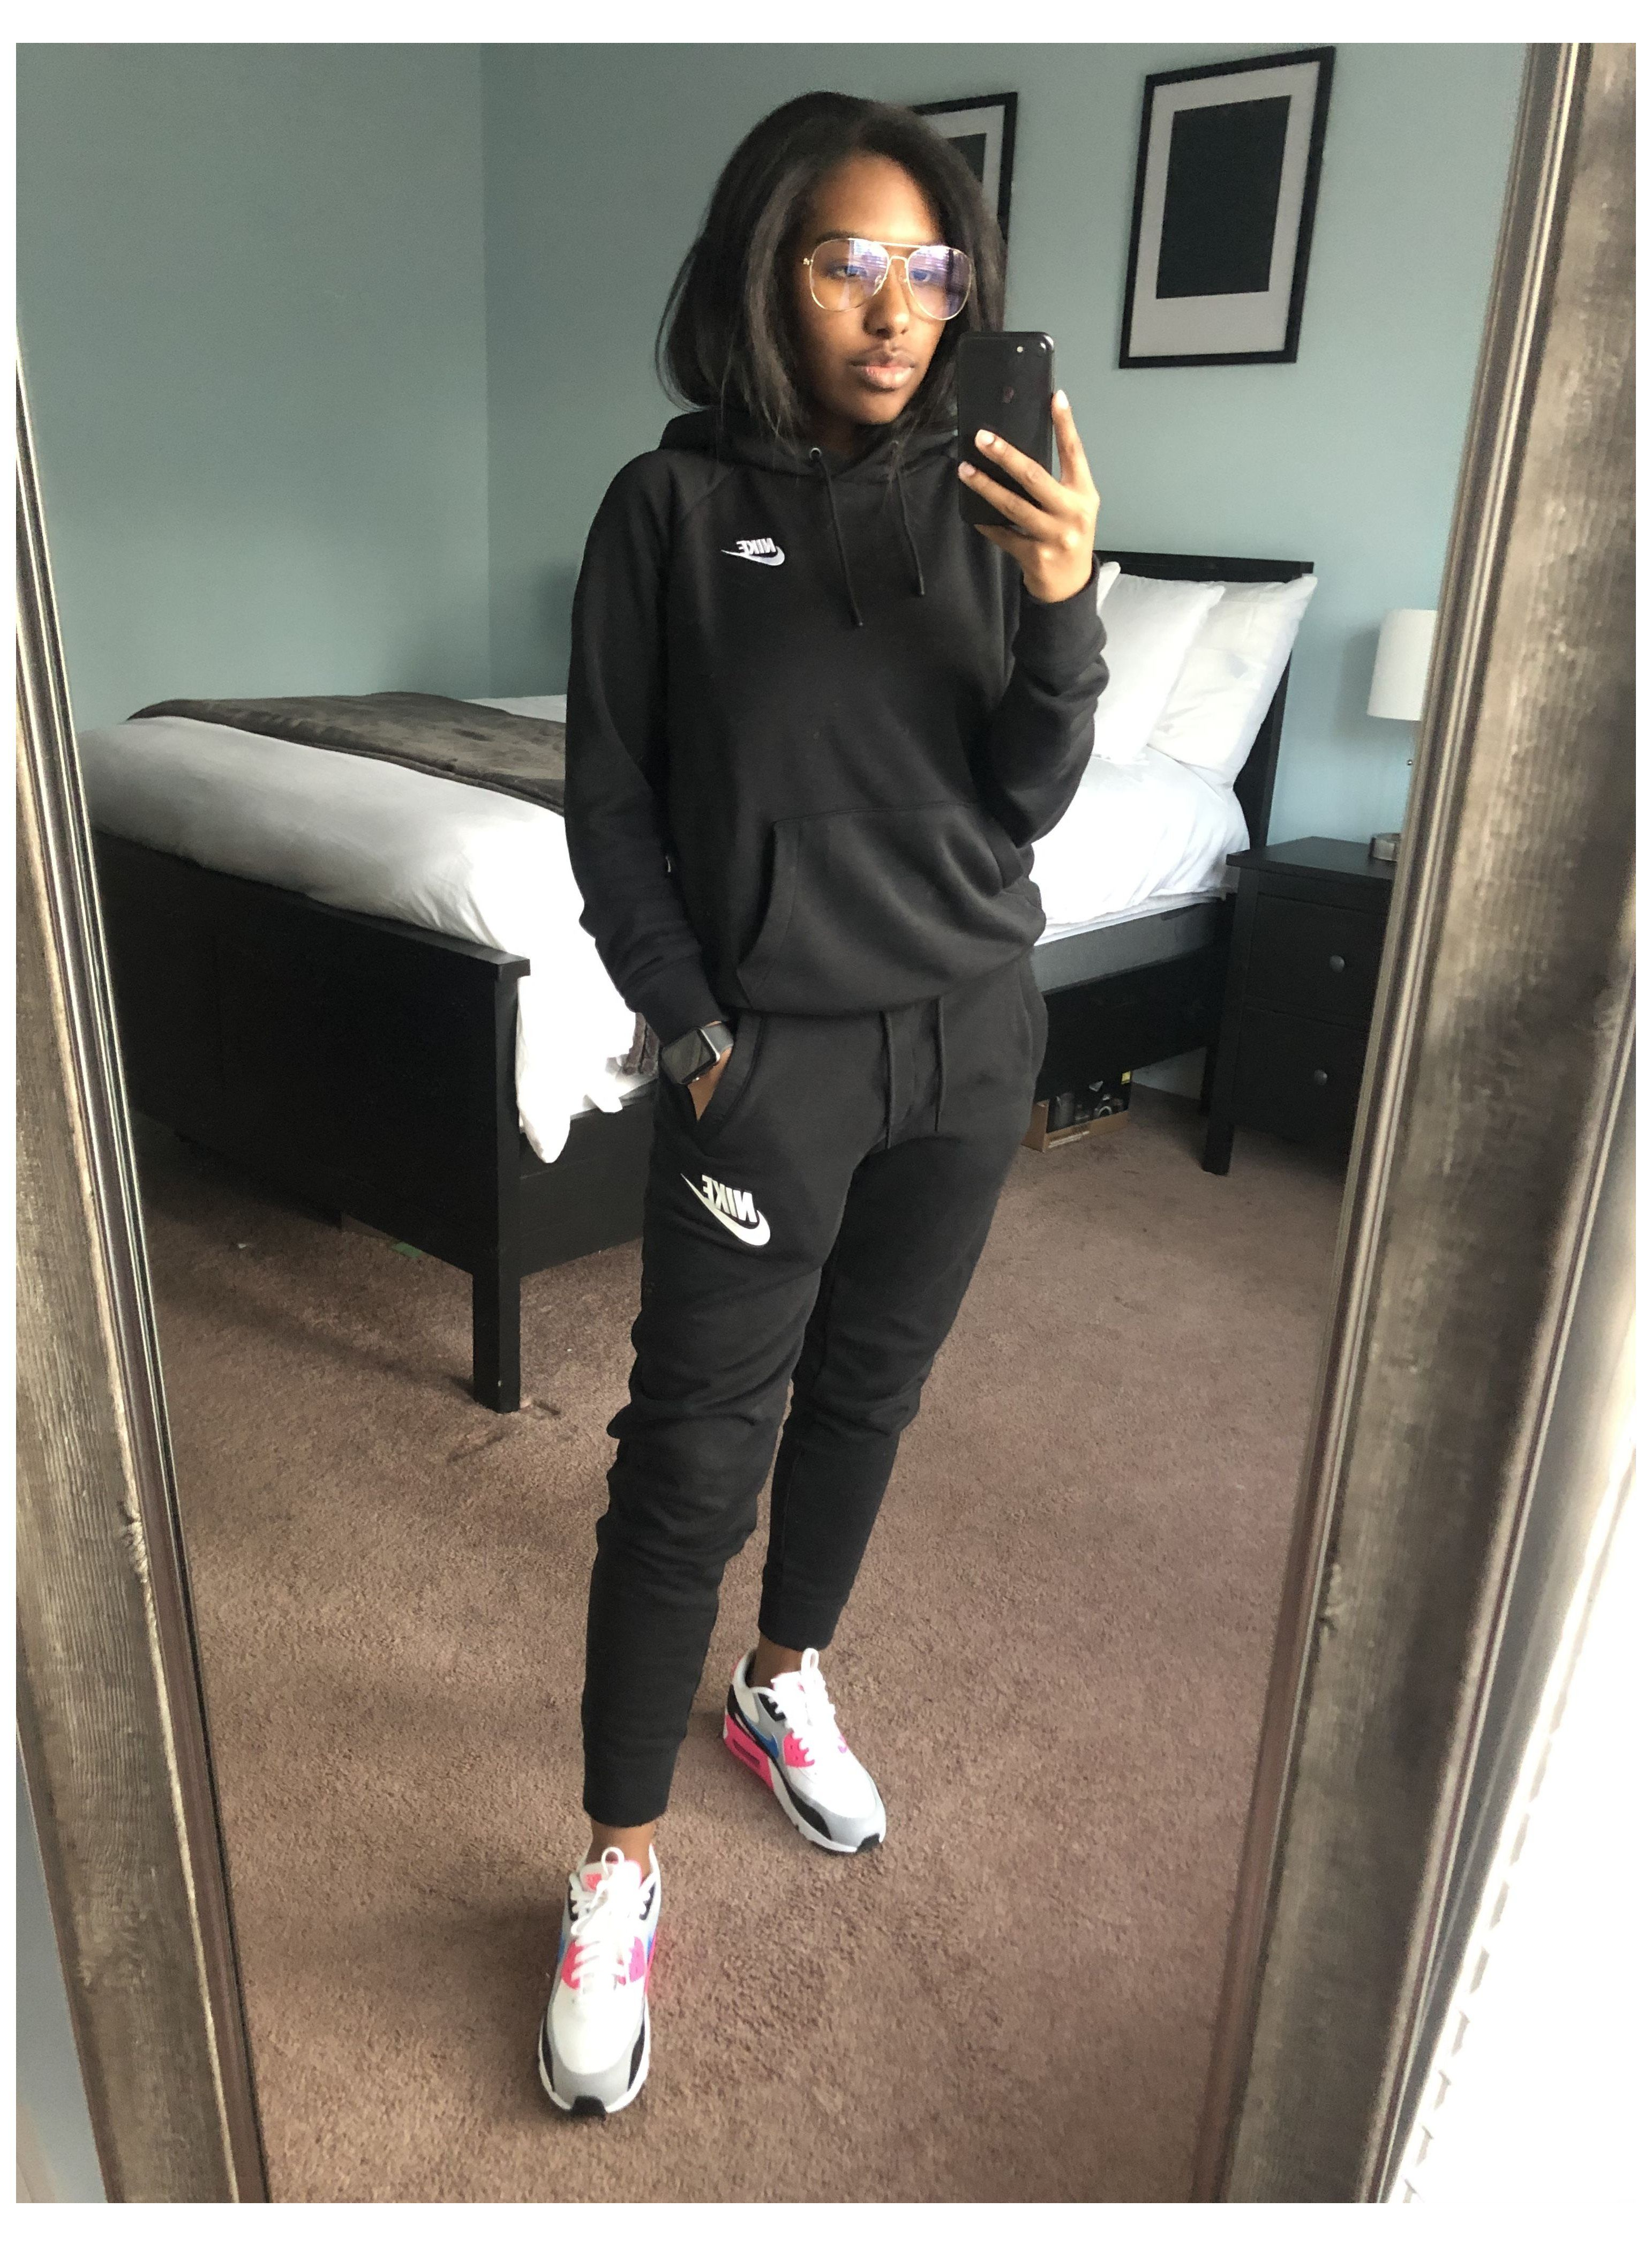 Nike Outfit Nike Air Max 90 Women Outfit Fashion Nikeairmax90womenoutfitfashion Nike Air Max 90 Women Outfit Nike Women Outfits Air Max 90 Women Outfit [ 4192 x 3084 Pixel ]